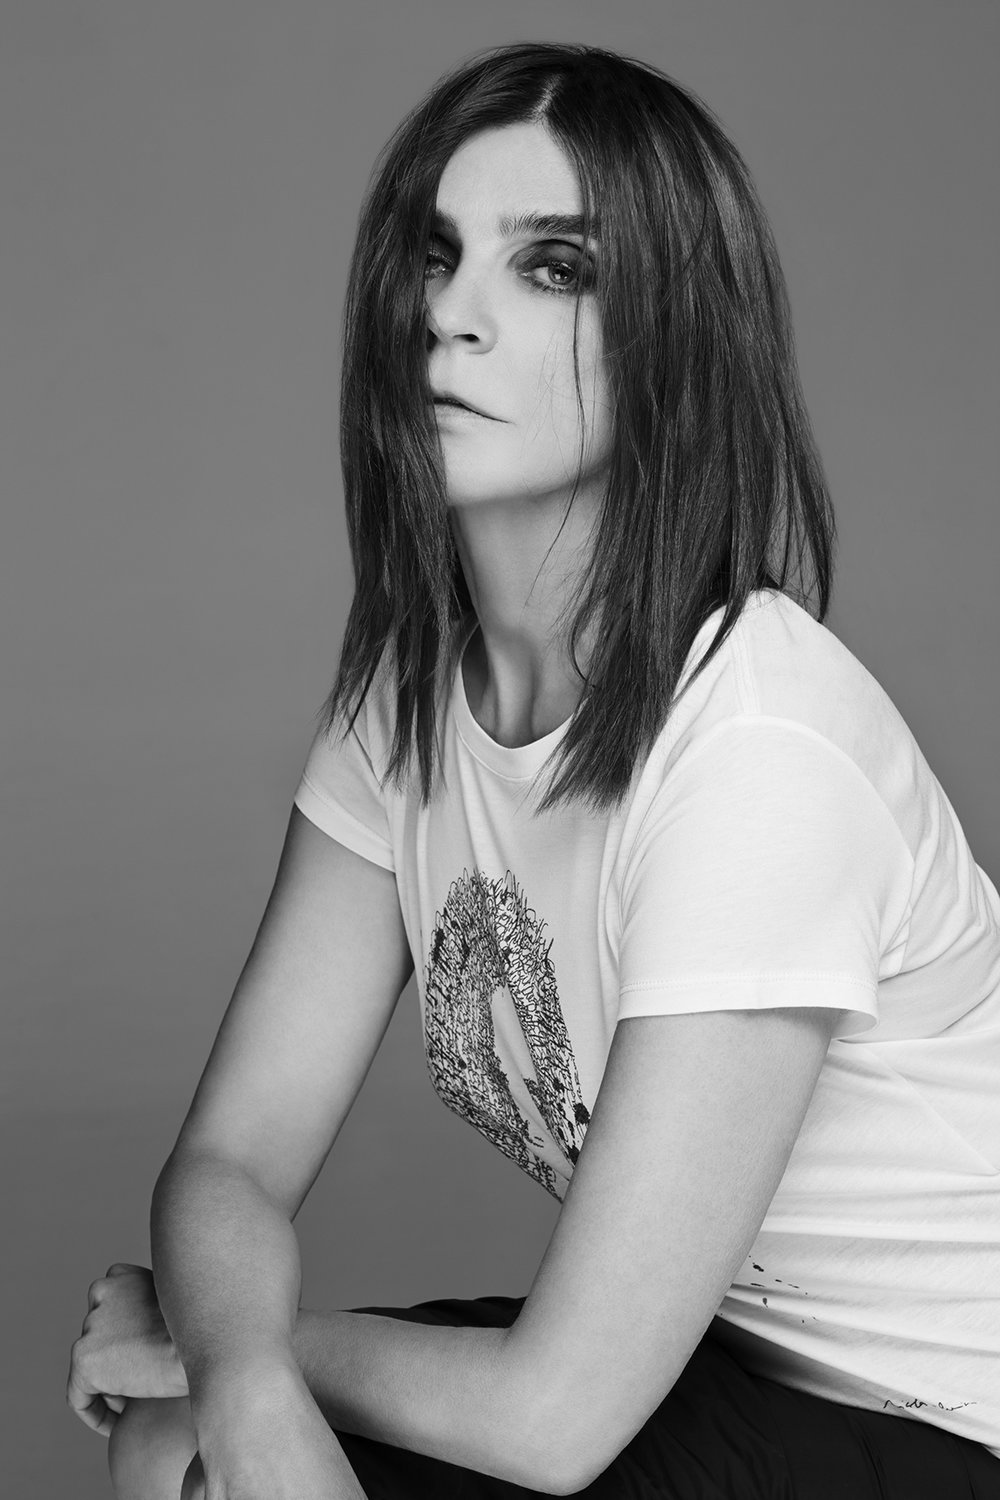 About Carine Roitfeld - Carine Roitfeld is the former editor-in-chief of Vogue Paris, a position she held from 2001 to 31 January 2011. A former fashion model and writer, she announced her resignation on 17 December 2010 and was succeeded by Emmanuelle Alt. In 2012, she became founder and editor-in-chief of CR Fashion Book which has grown into a leading global source for all things fashion and lifestyle.